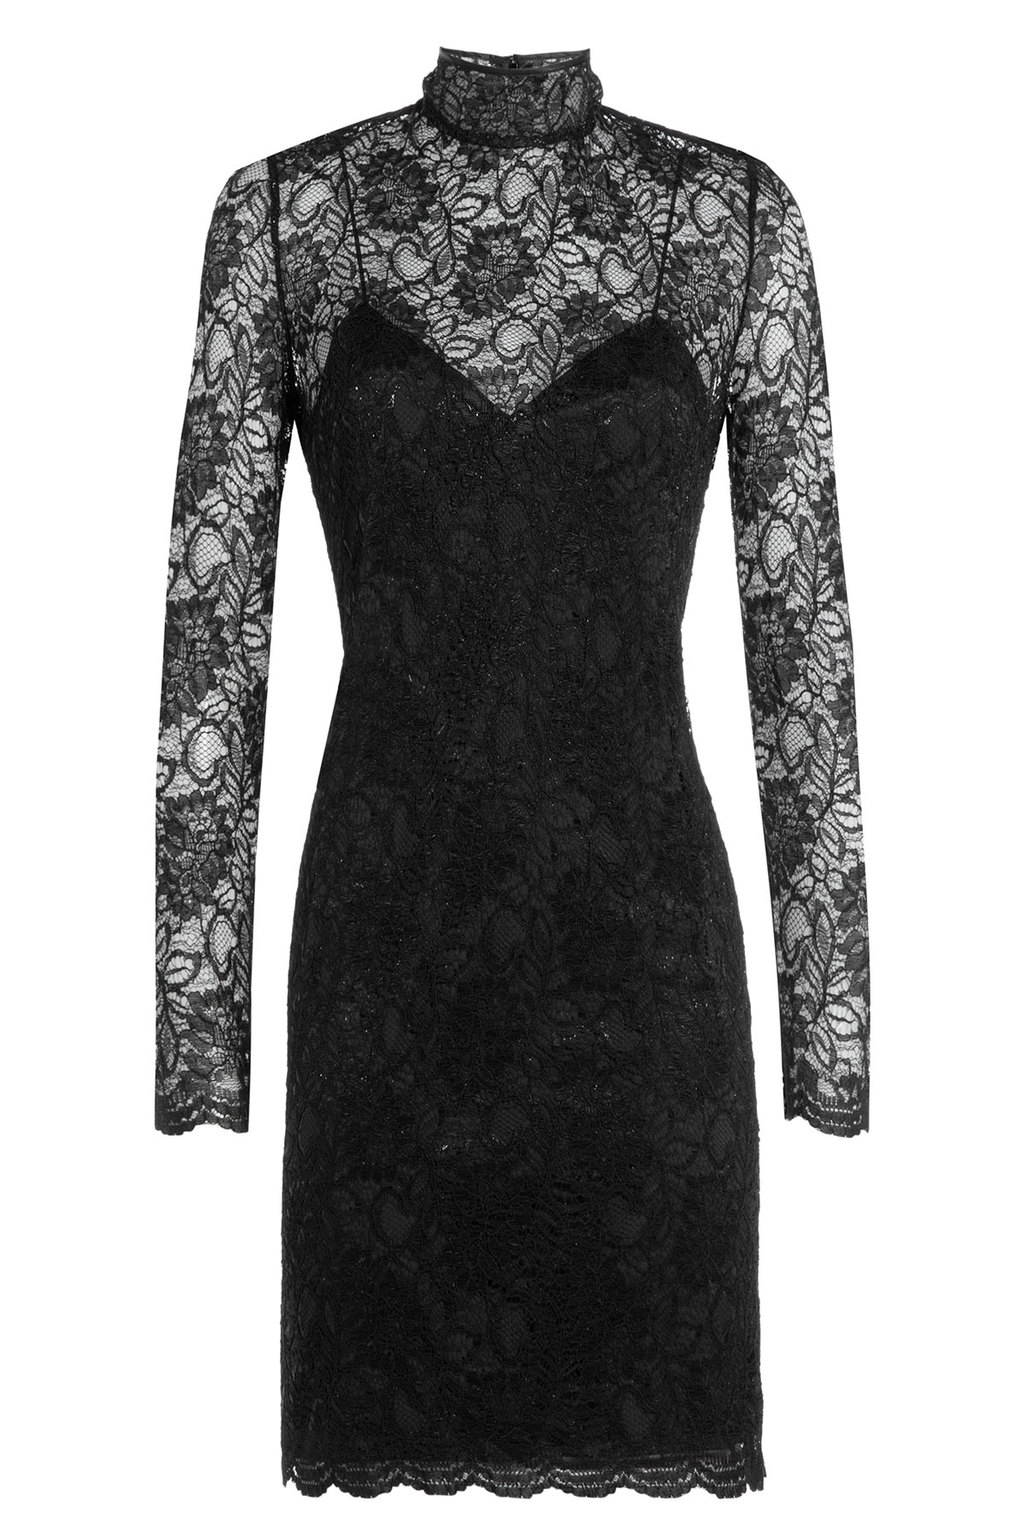 Lace Cocktail Dress Black - fit: tight; neckline: high neck; style: bodycon; bust detail: sheer at bust; predominant colour: black; length: just above the knee; sleeve length: long sleeve; sleeve style: standard; texture group: lace; pattern type: fabric; pattern: patterned/print; fibres: viscose/rayon - mix; season: a/w 2015; wardrobe: highlight